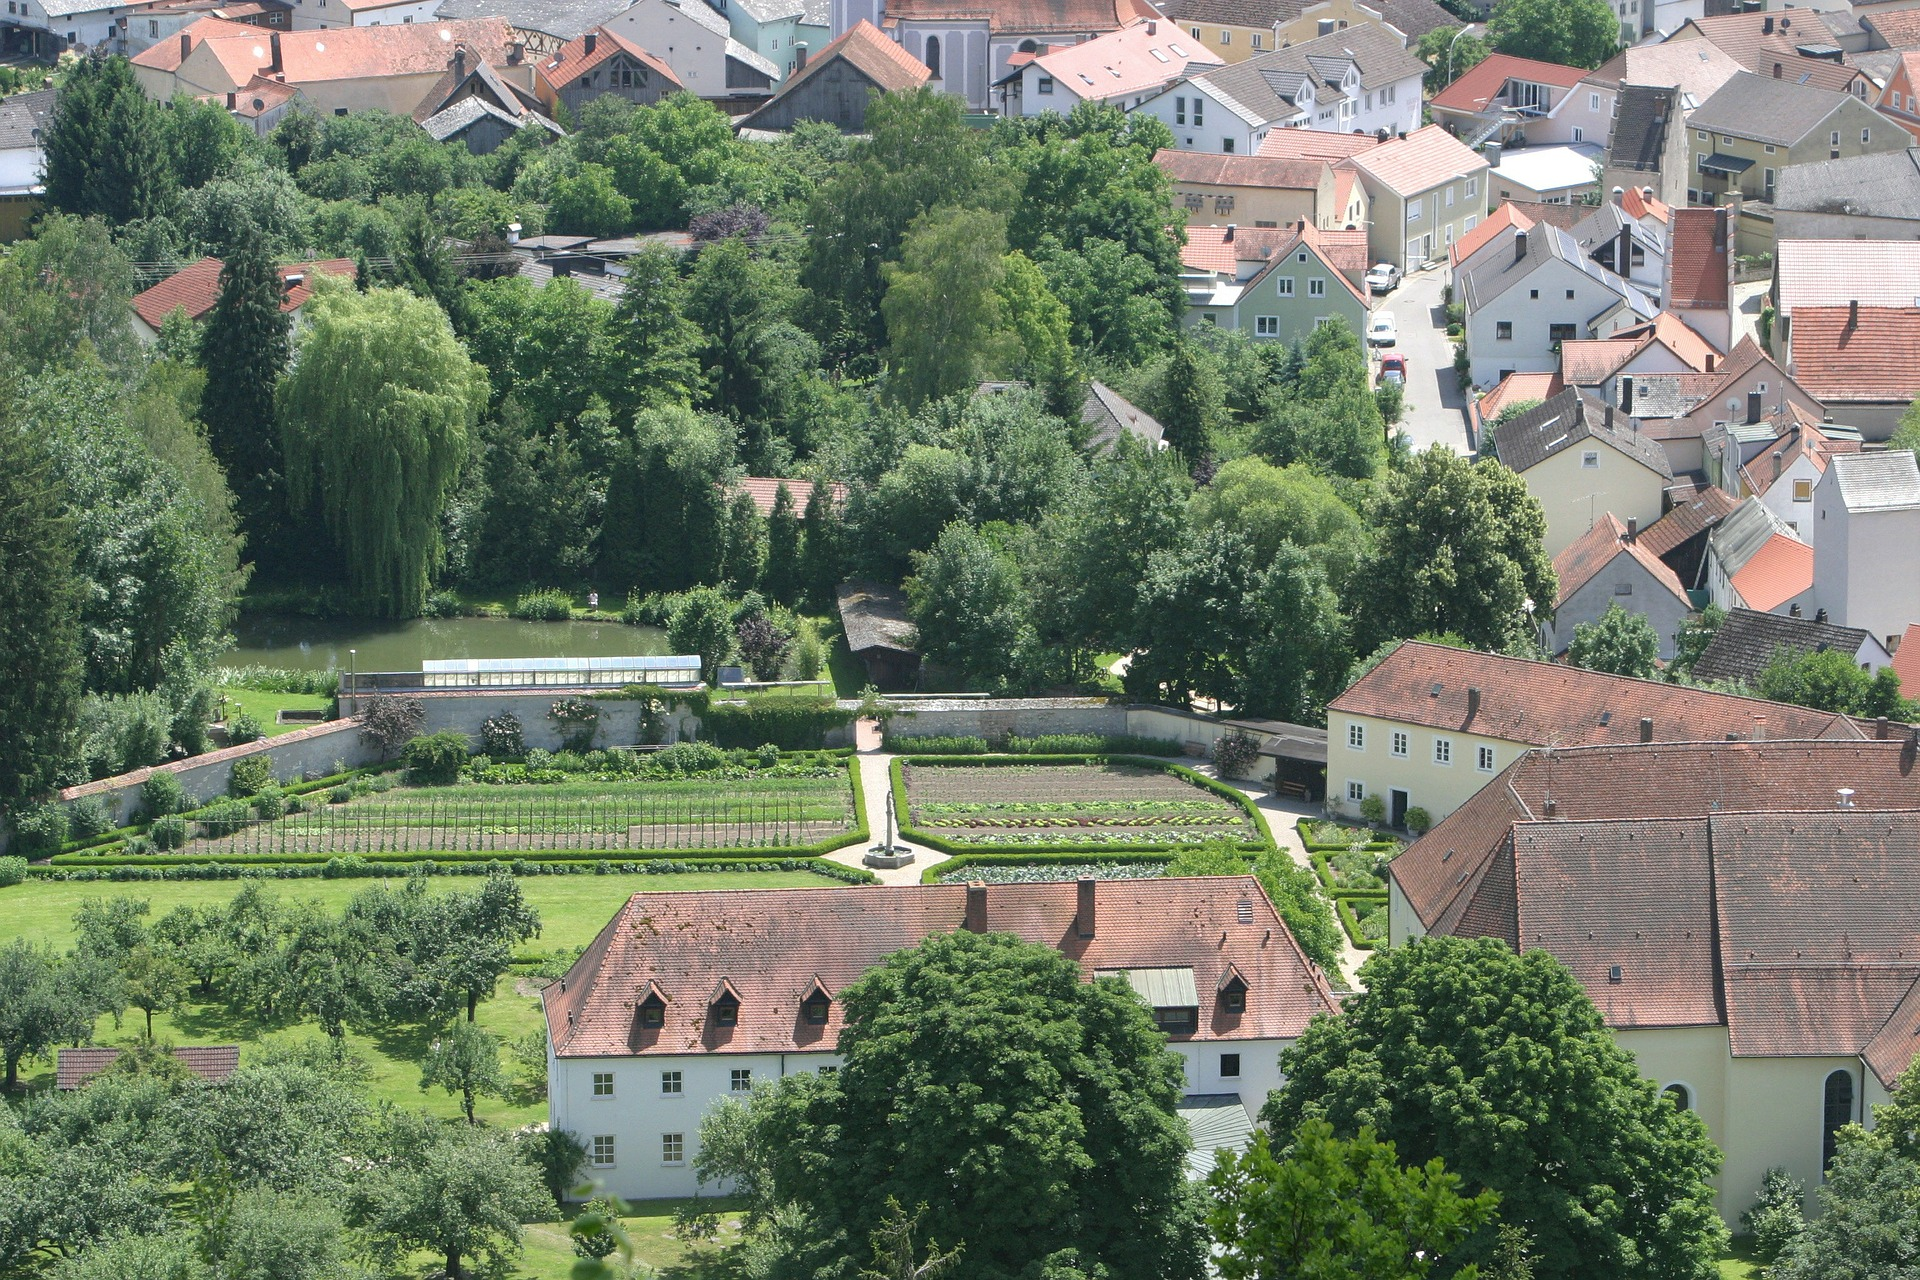 107-dietfurt-in-the-altmuhl-valley-226808_1920_agriculture urbaine